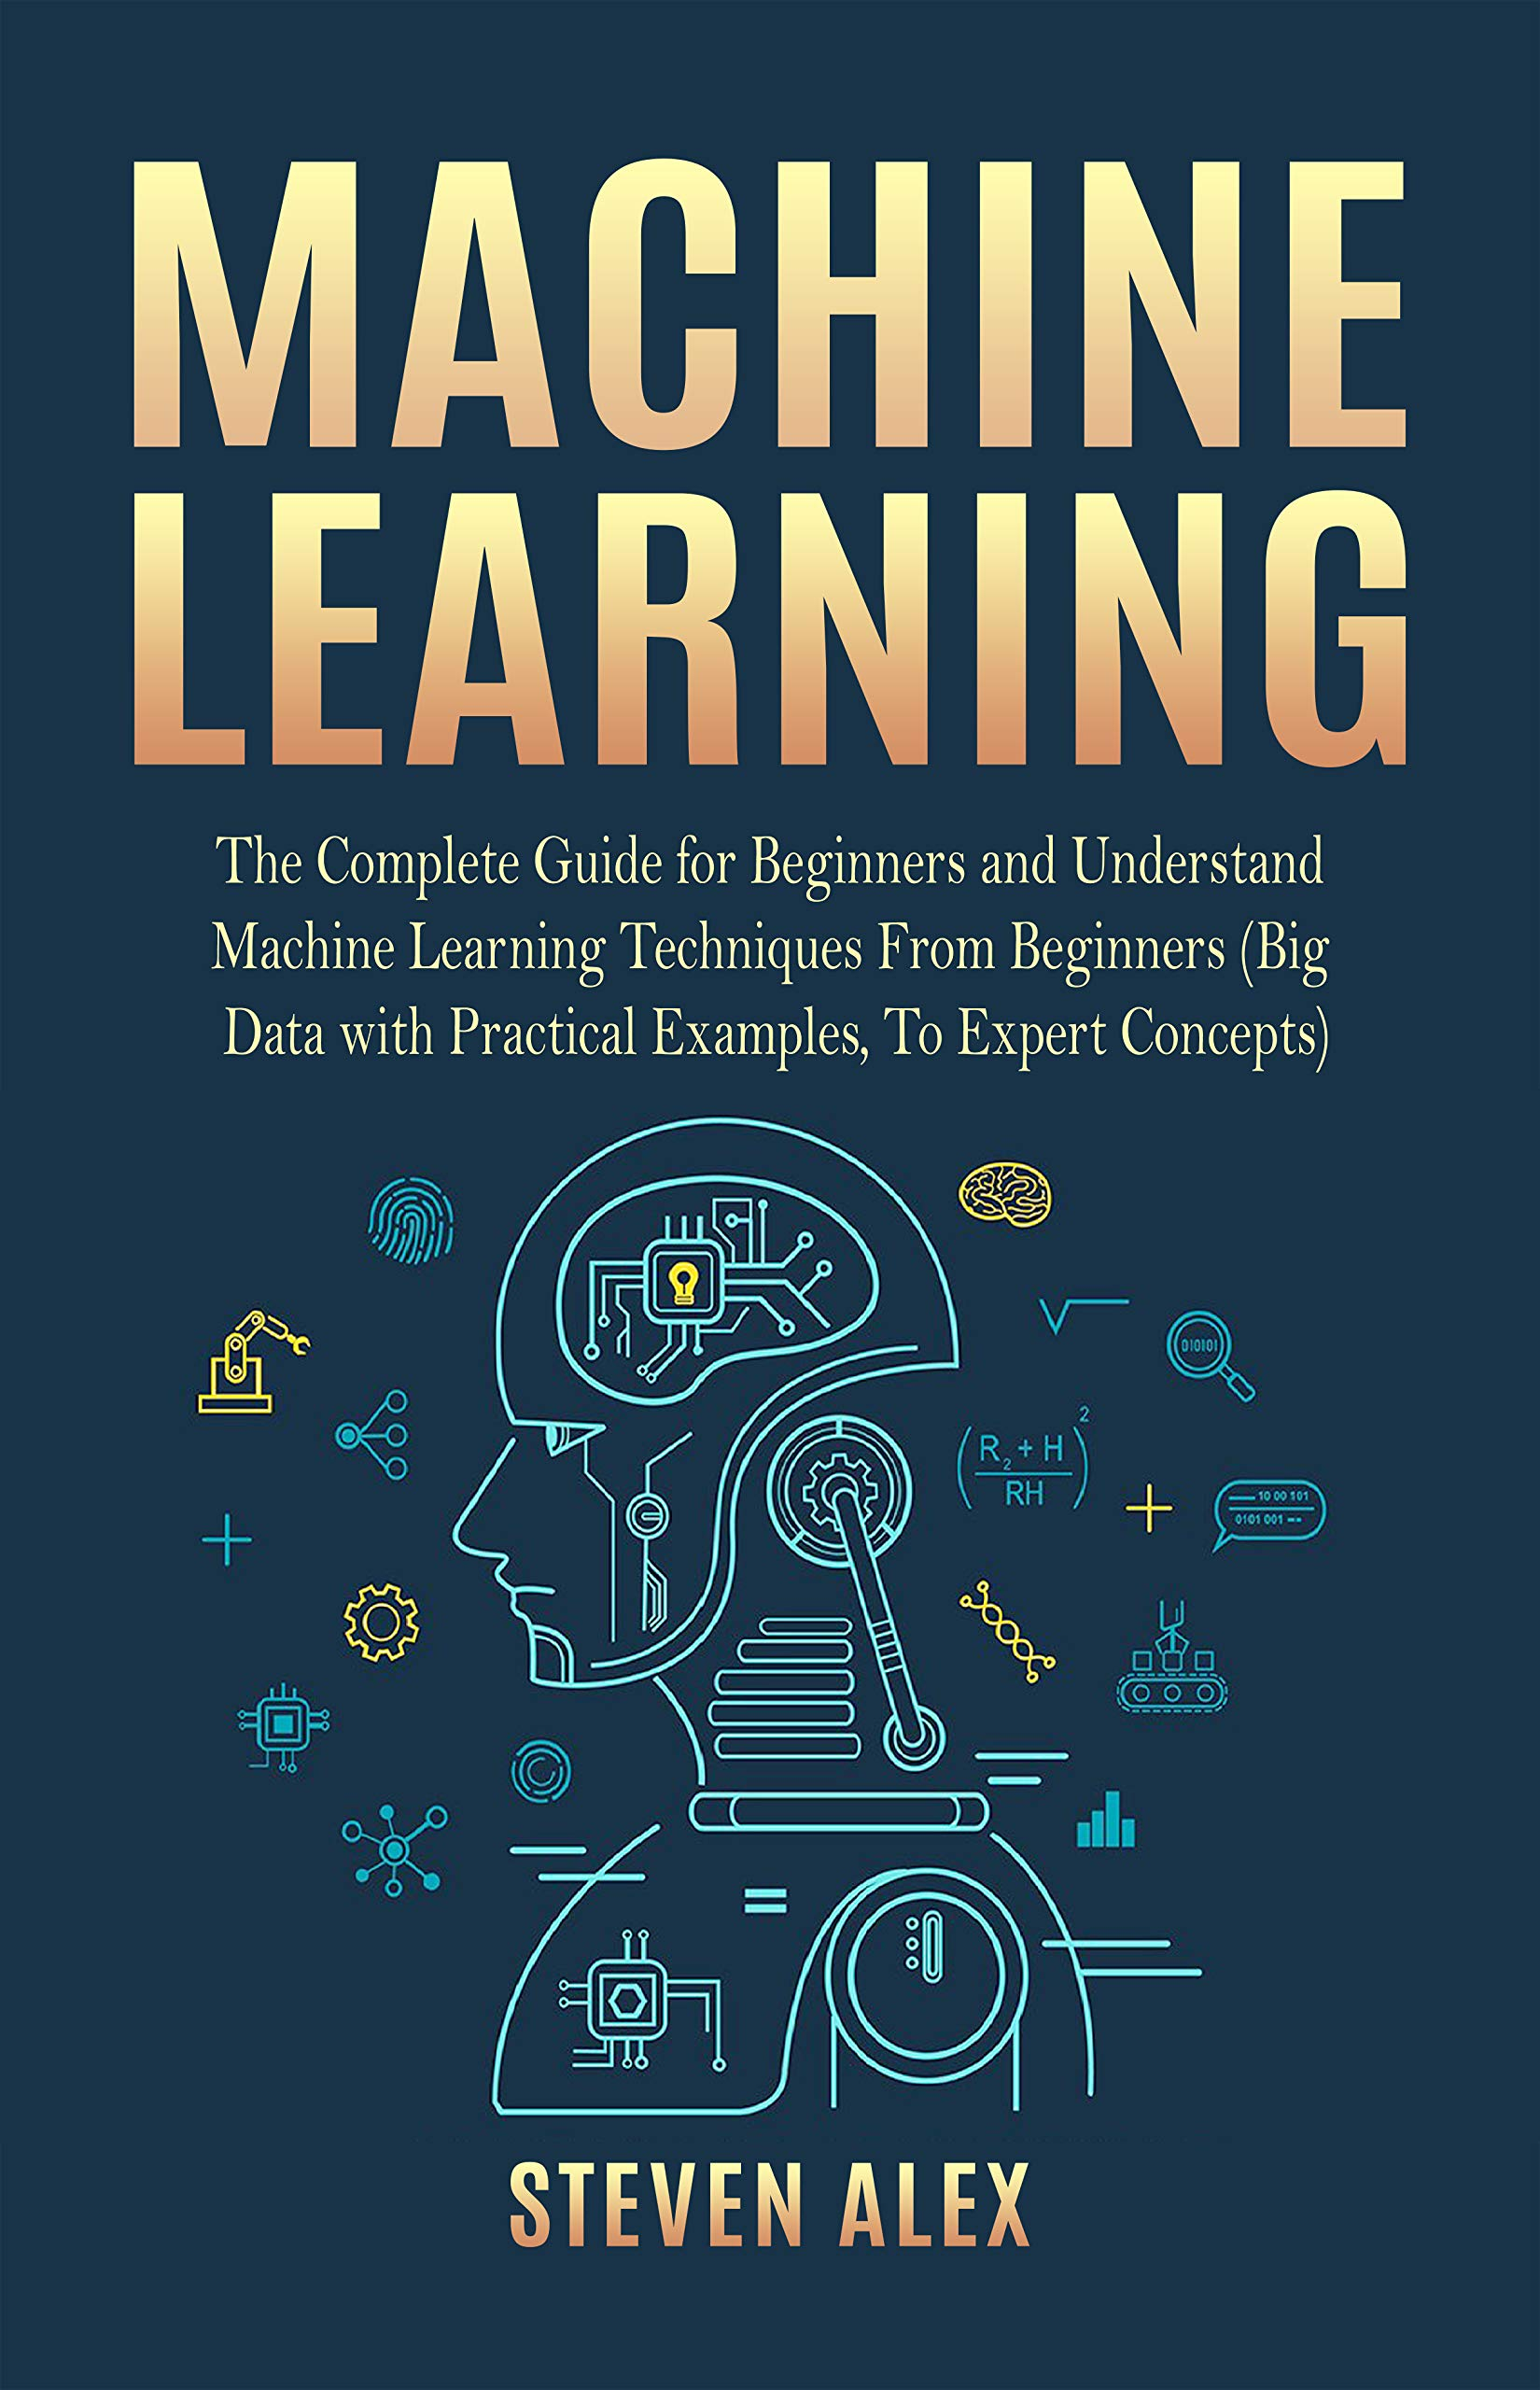 Machine Learning  The Complete Guide For Beginners And Understand Machine Learning Techniques From Beginners  Big Data With Practical Examples To Expert Concepts   English Edition